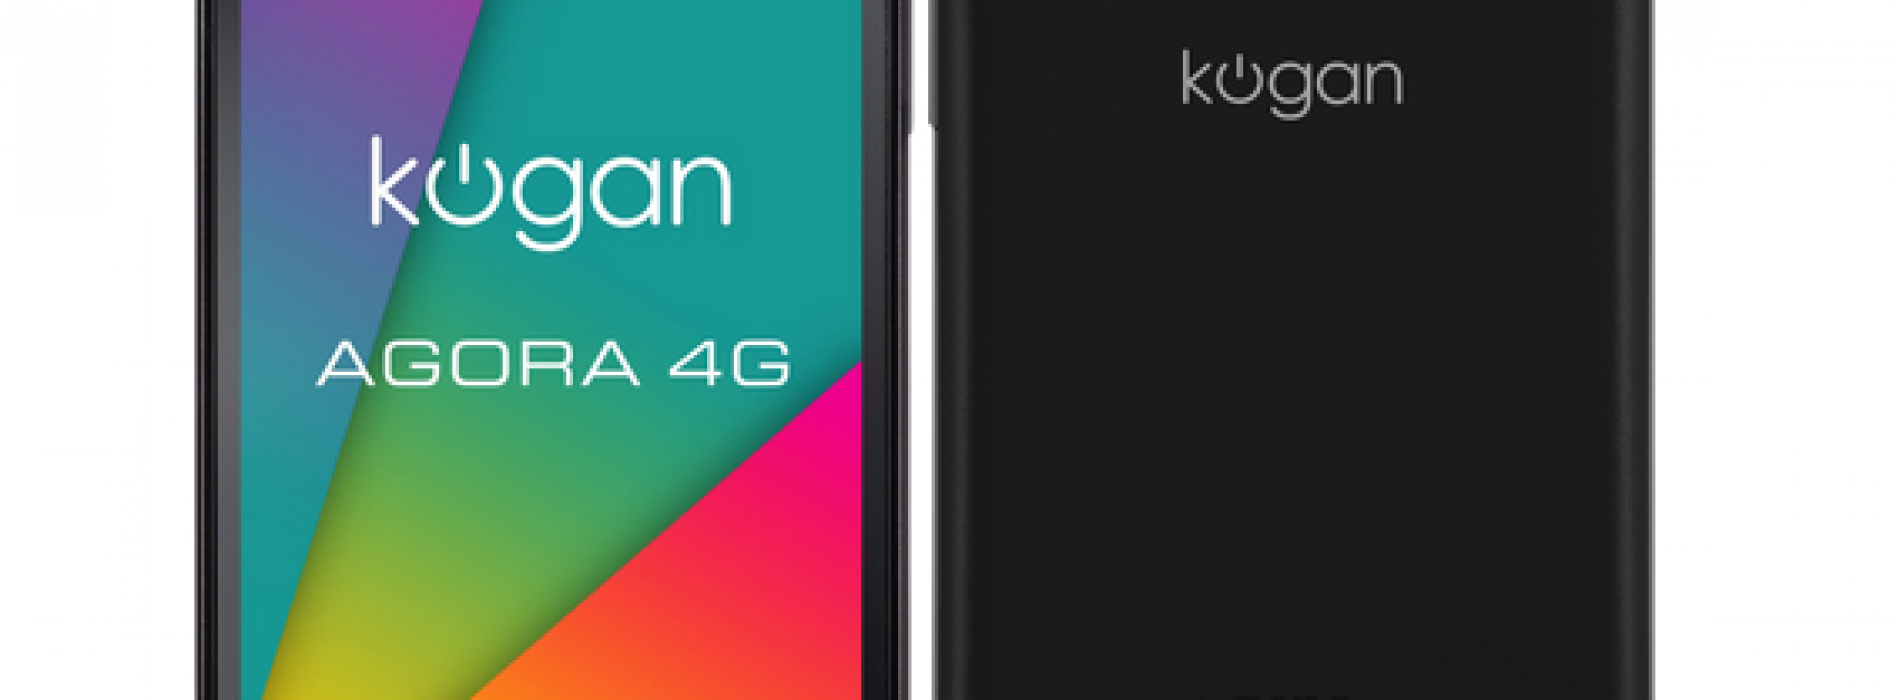 Kogan's £150 4G Agora Android smartphone now available in the UK